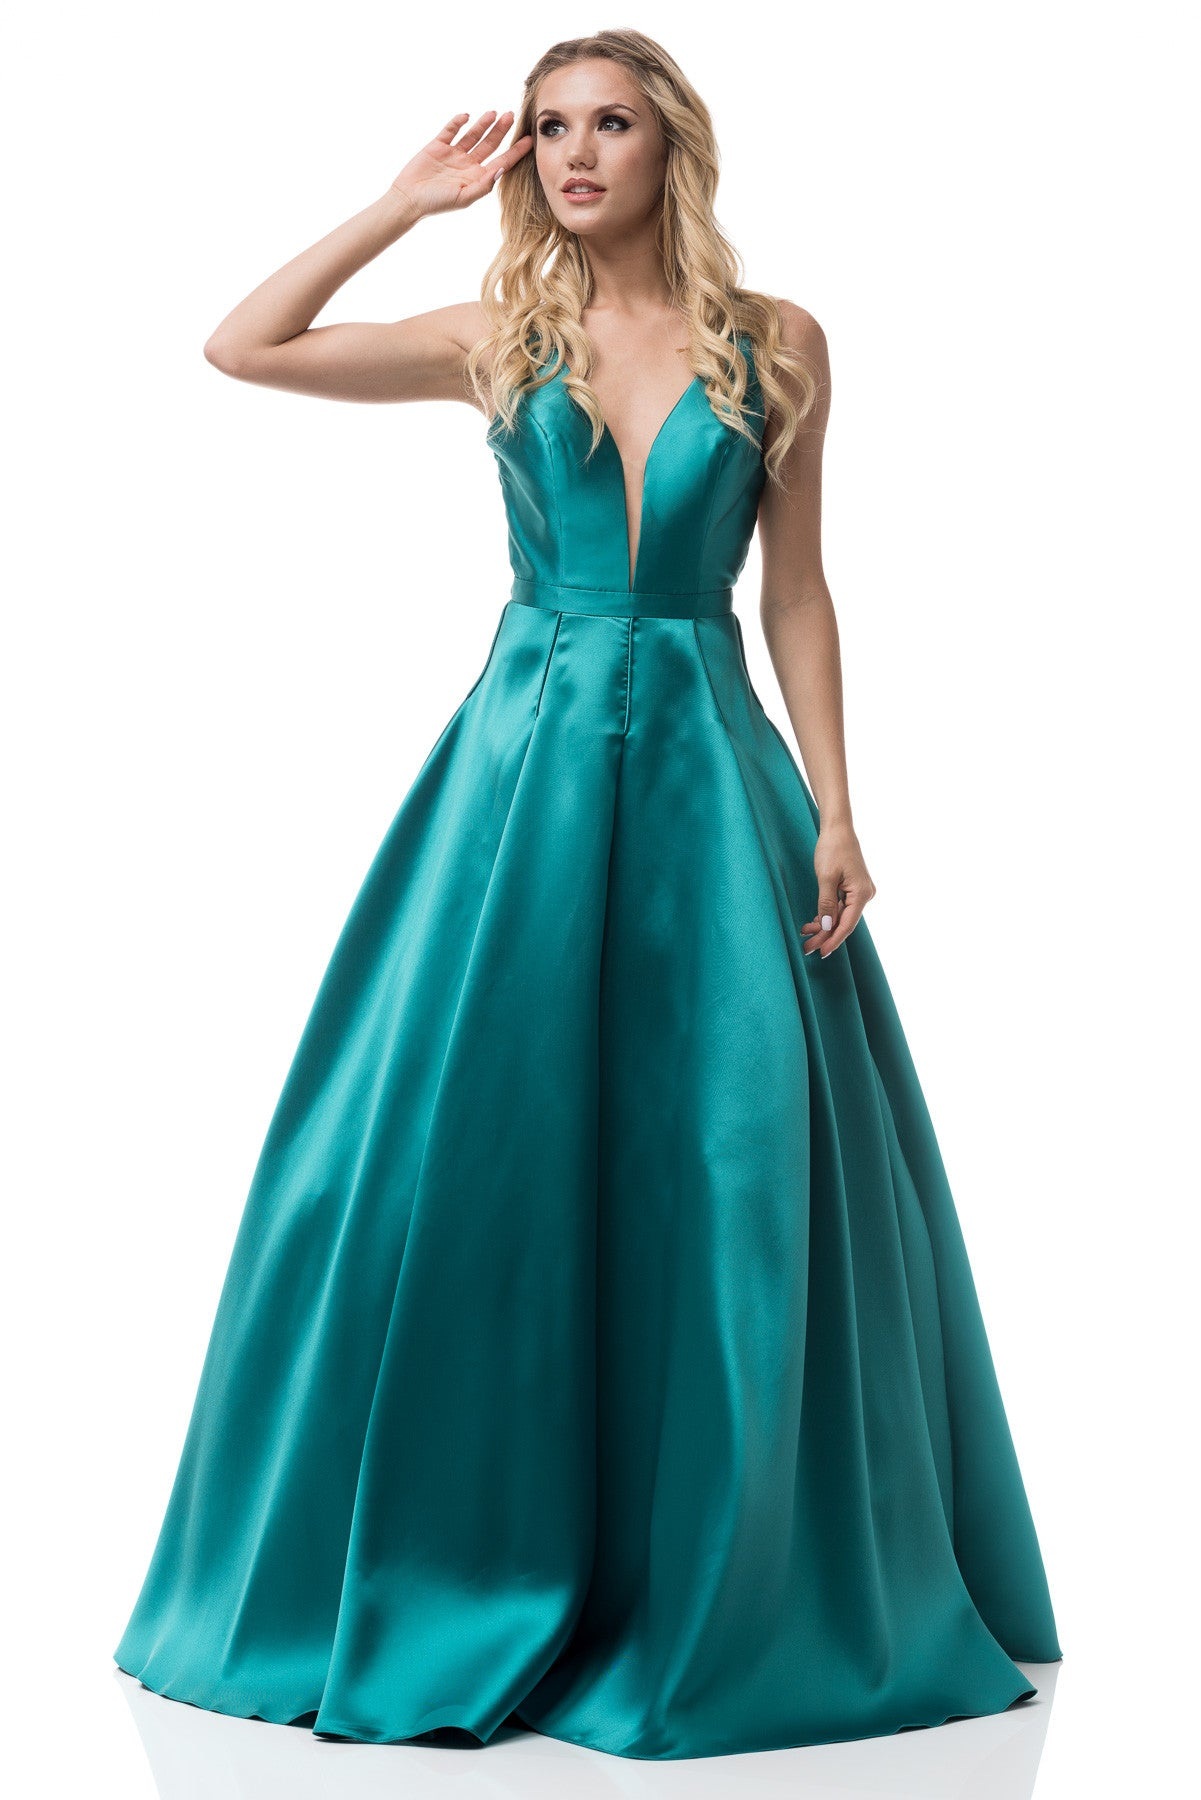 Formal Dresses, Evening Gowns & Special Occasion Dresses – BICICI & COTY